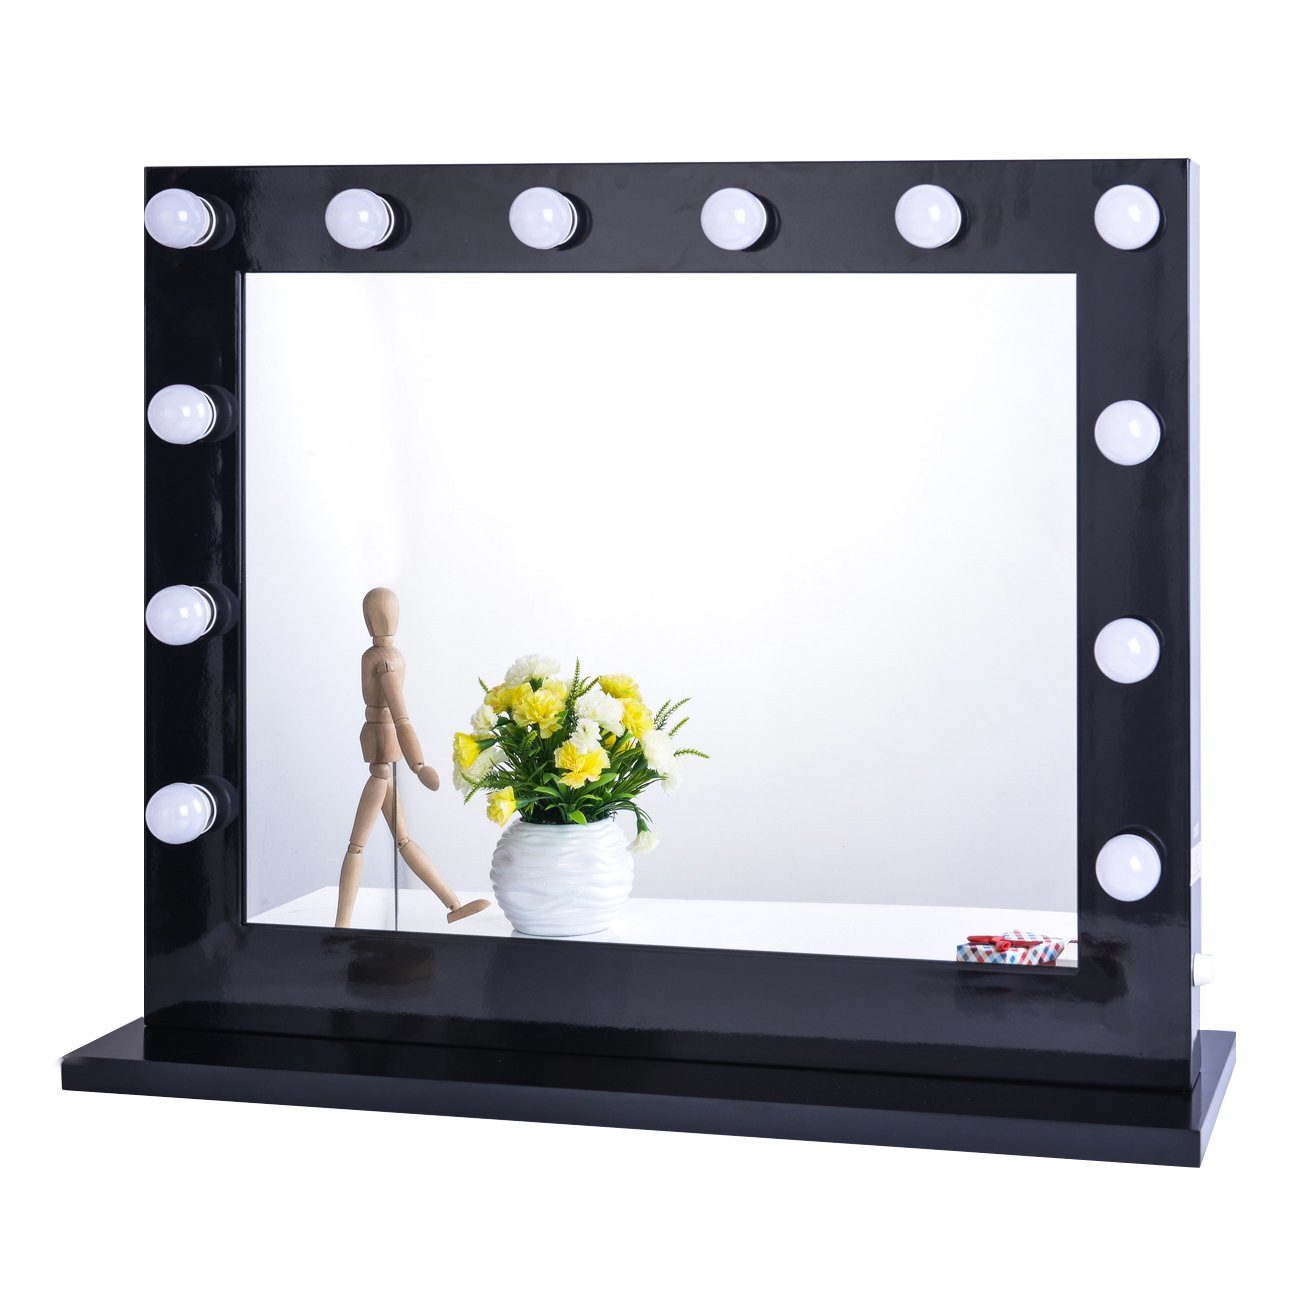 Chende Black Hollywood Lighted Makeup Vanity Mirror Light, Makeup Dressing Table Vanity Set Mirrors with Dimmer, Tabletop or Wall Mounted Vanity, LED Bulbs Included (8065, Black) by Chende